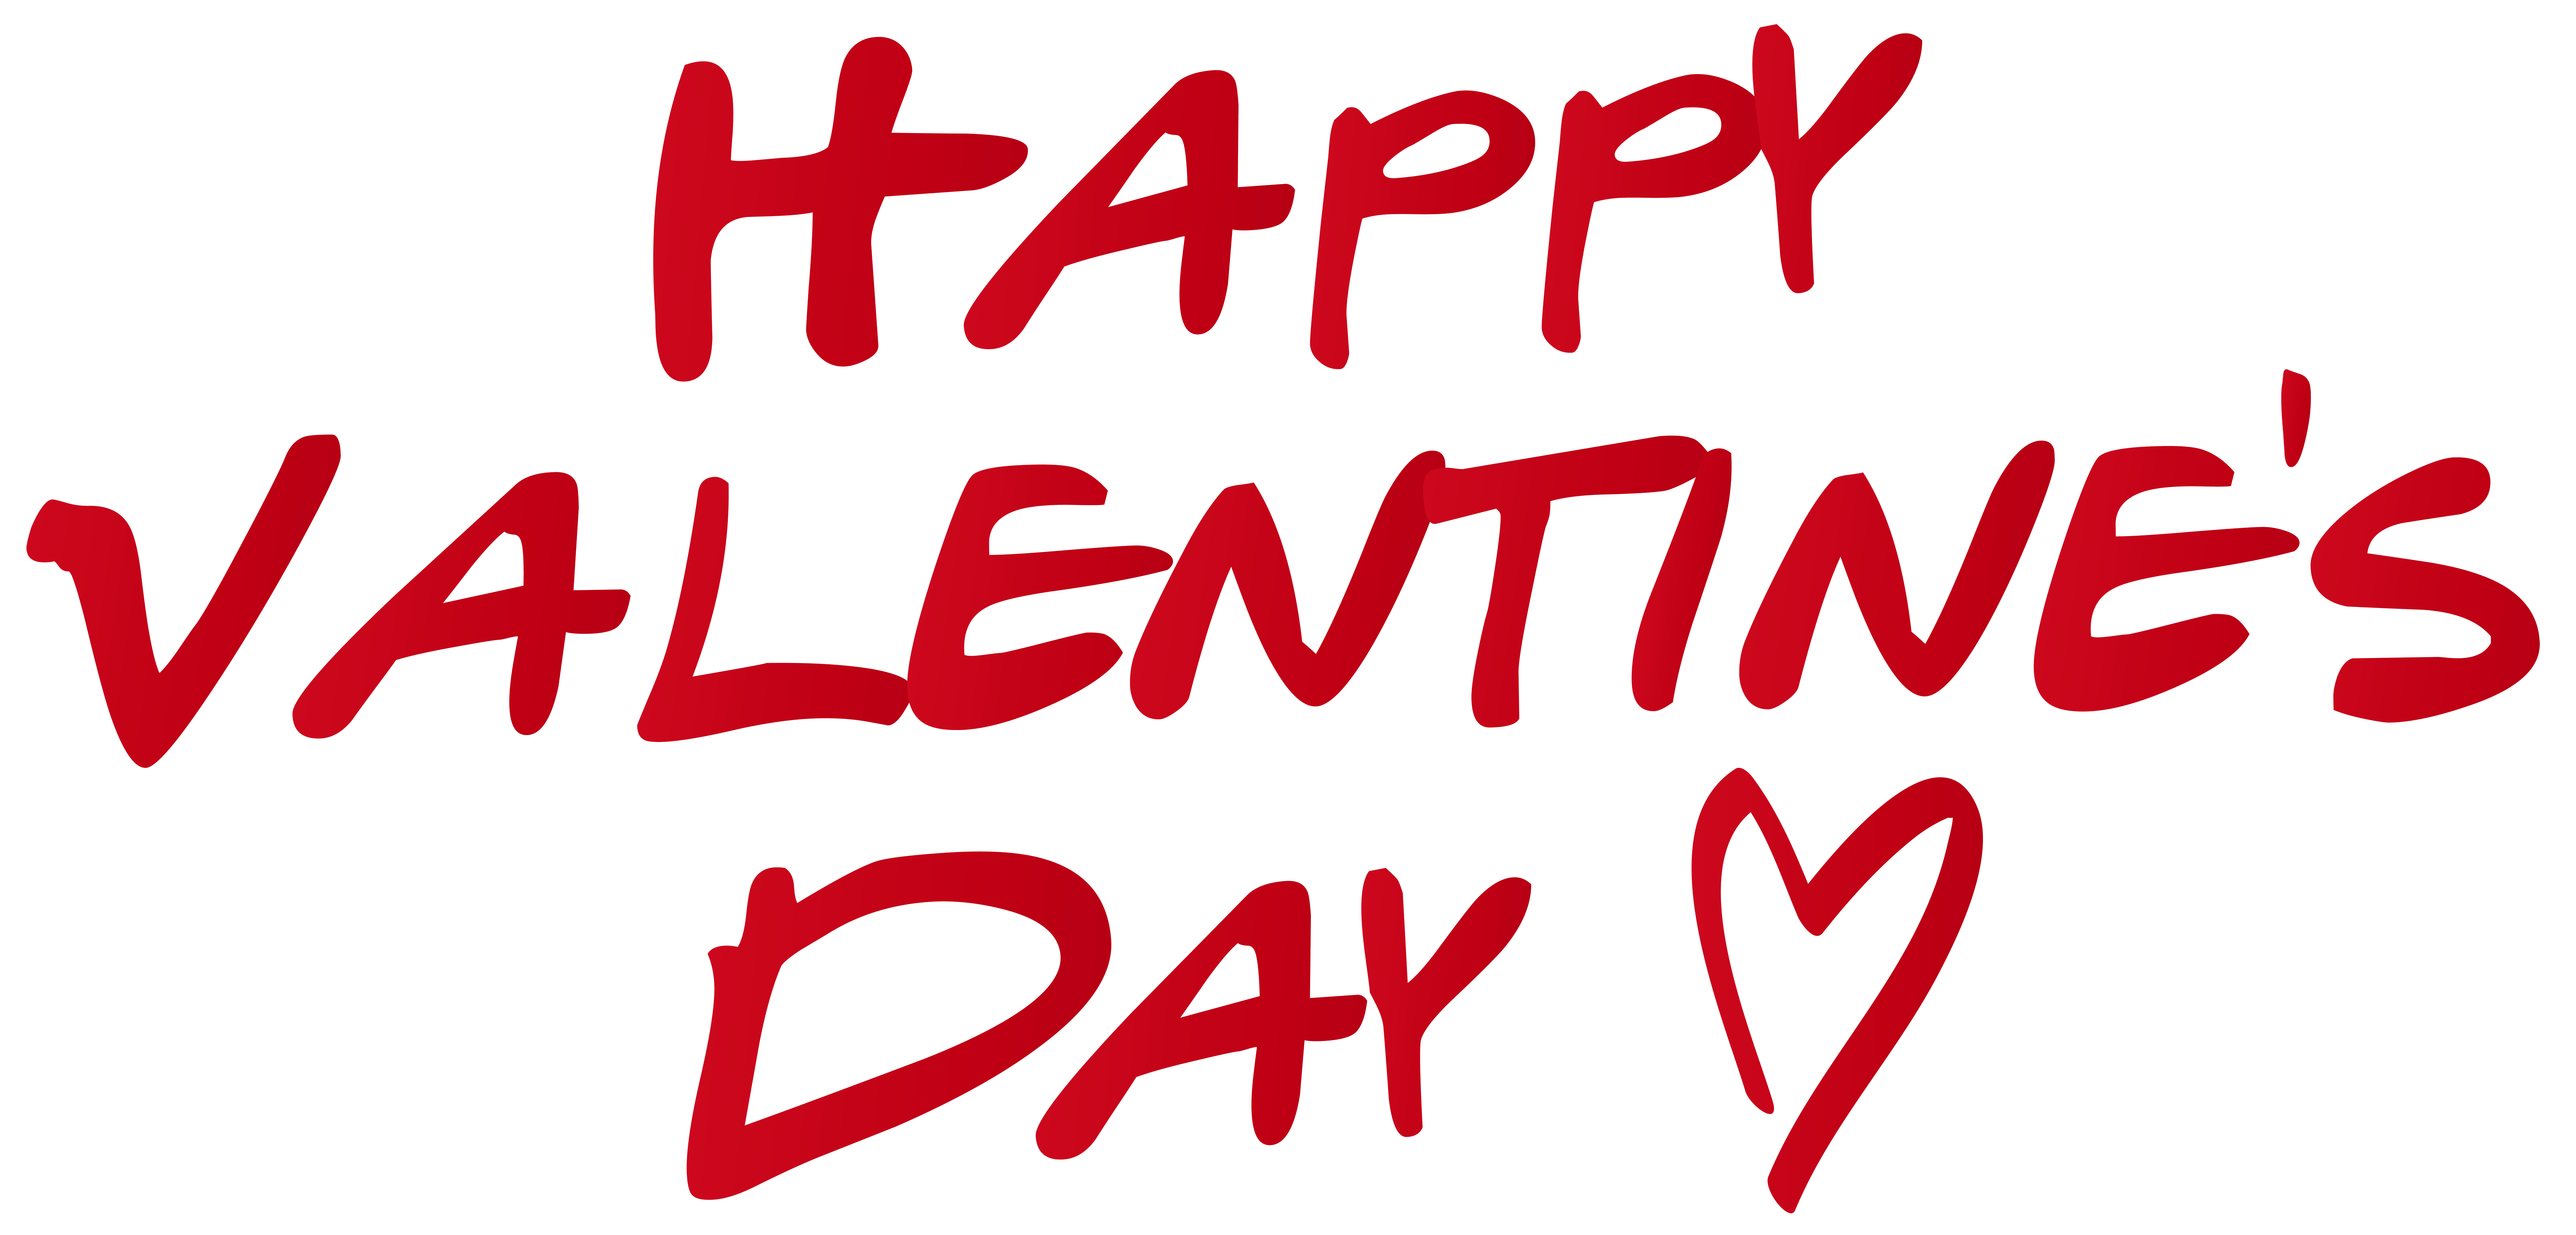 Valentineu0027s Day clipart hapy #4 - Valentines Day PNG HD